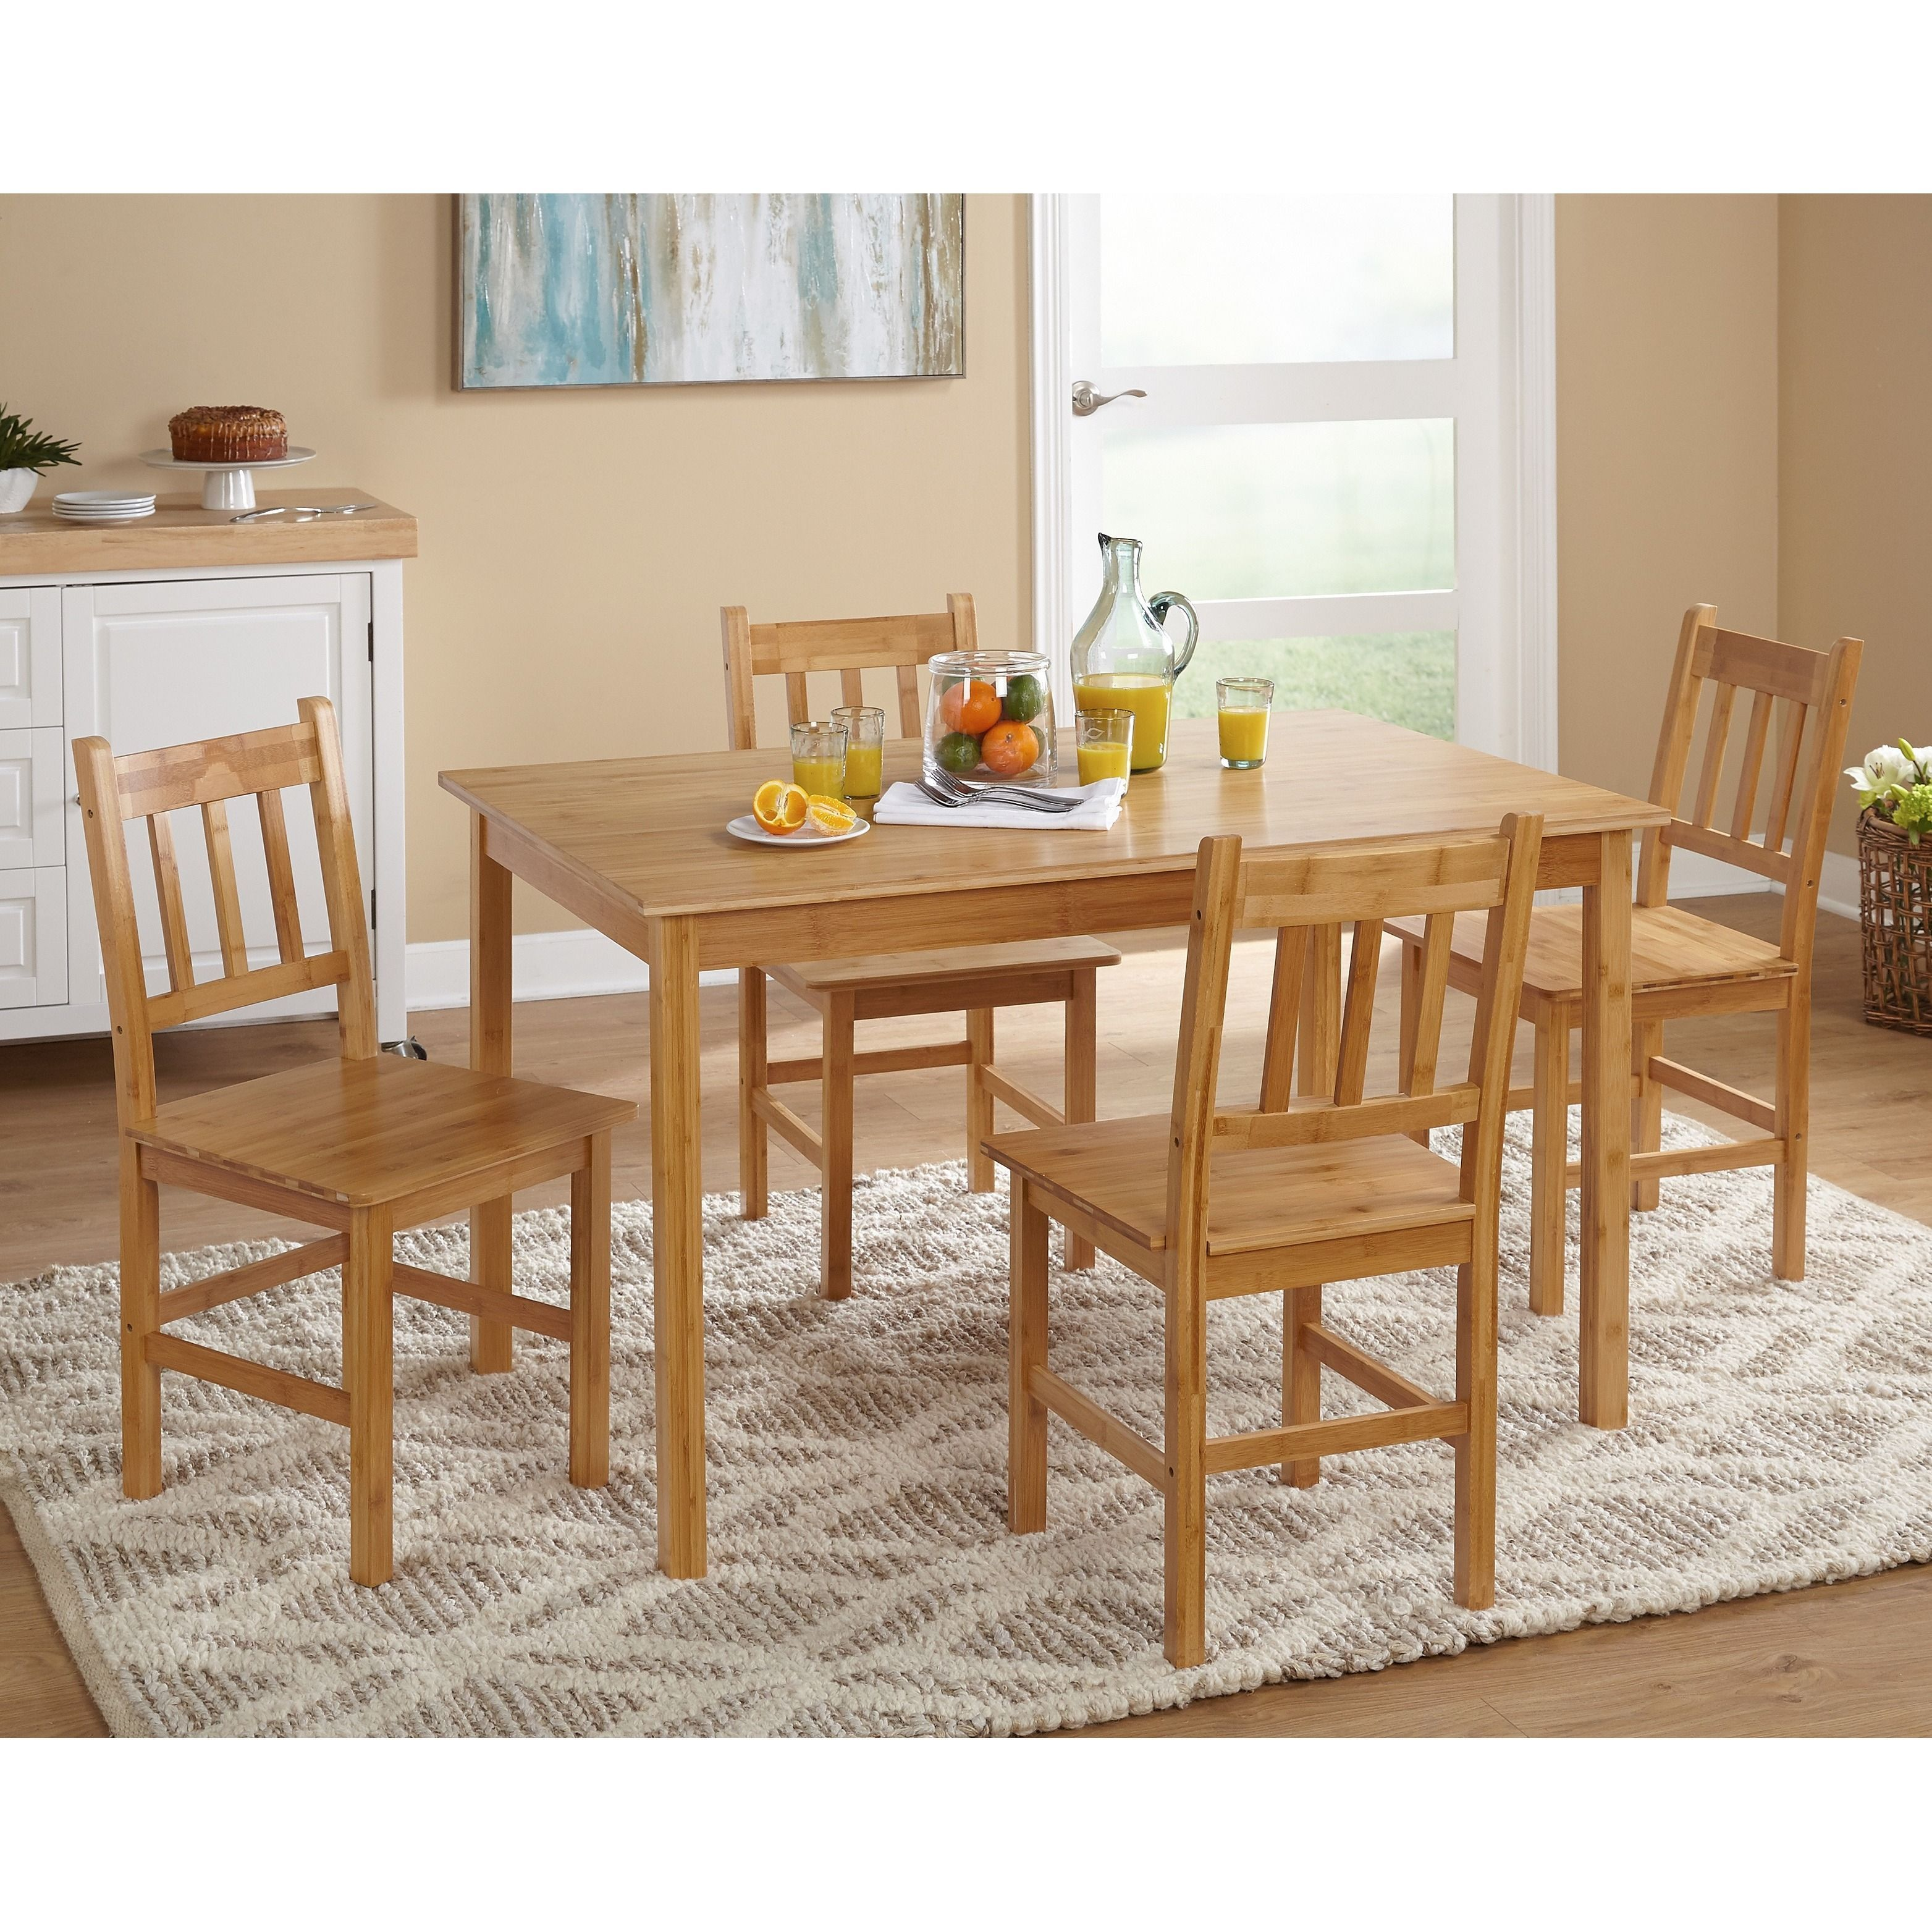 Excellent Simple Living Bamboo 5 Piece Dining Set 5Pc Bamboo Dining Customarchery Wood Chair Design Ideas Customarcherynet